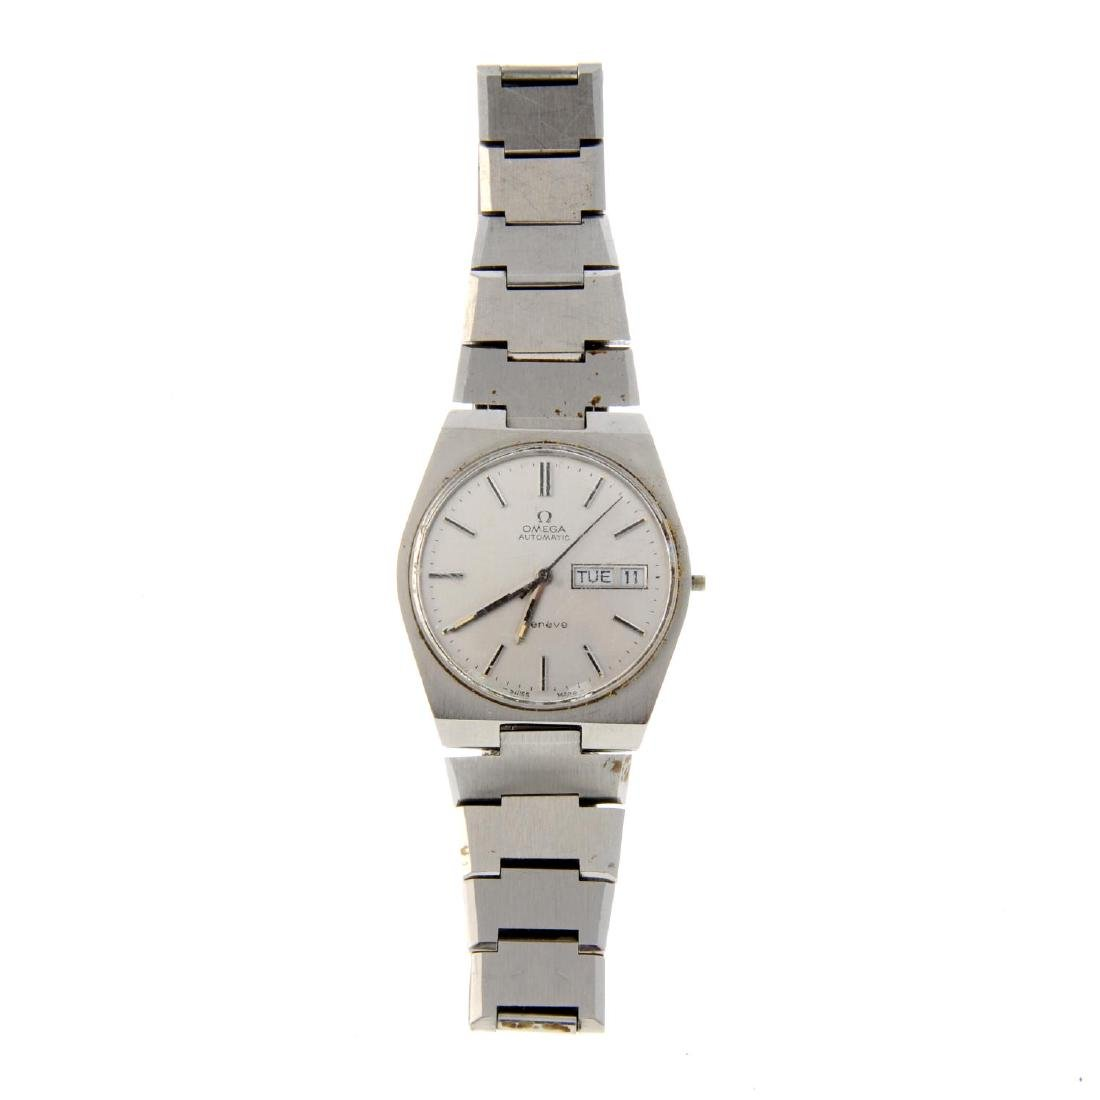 OMEGA - a gentleman's Genève bracelet watch. Stainless